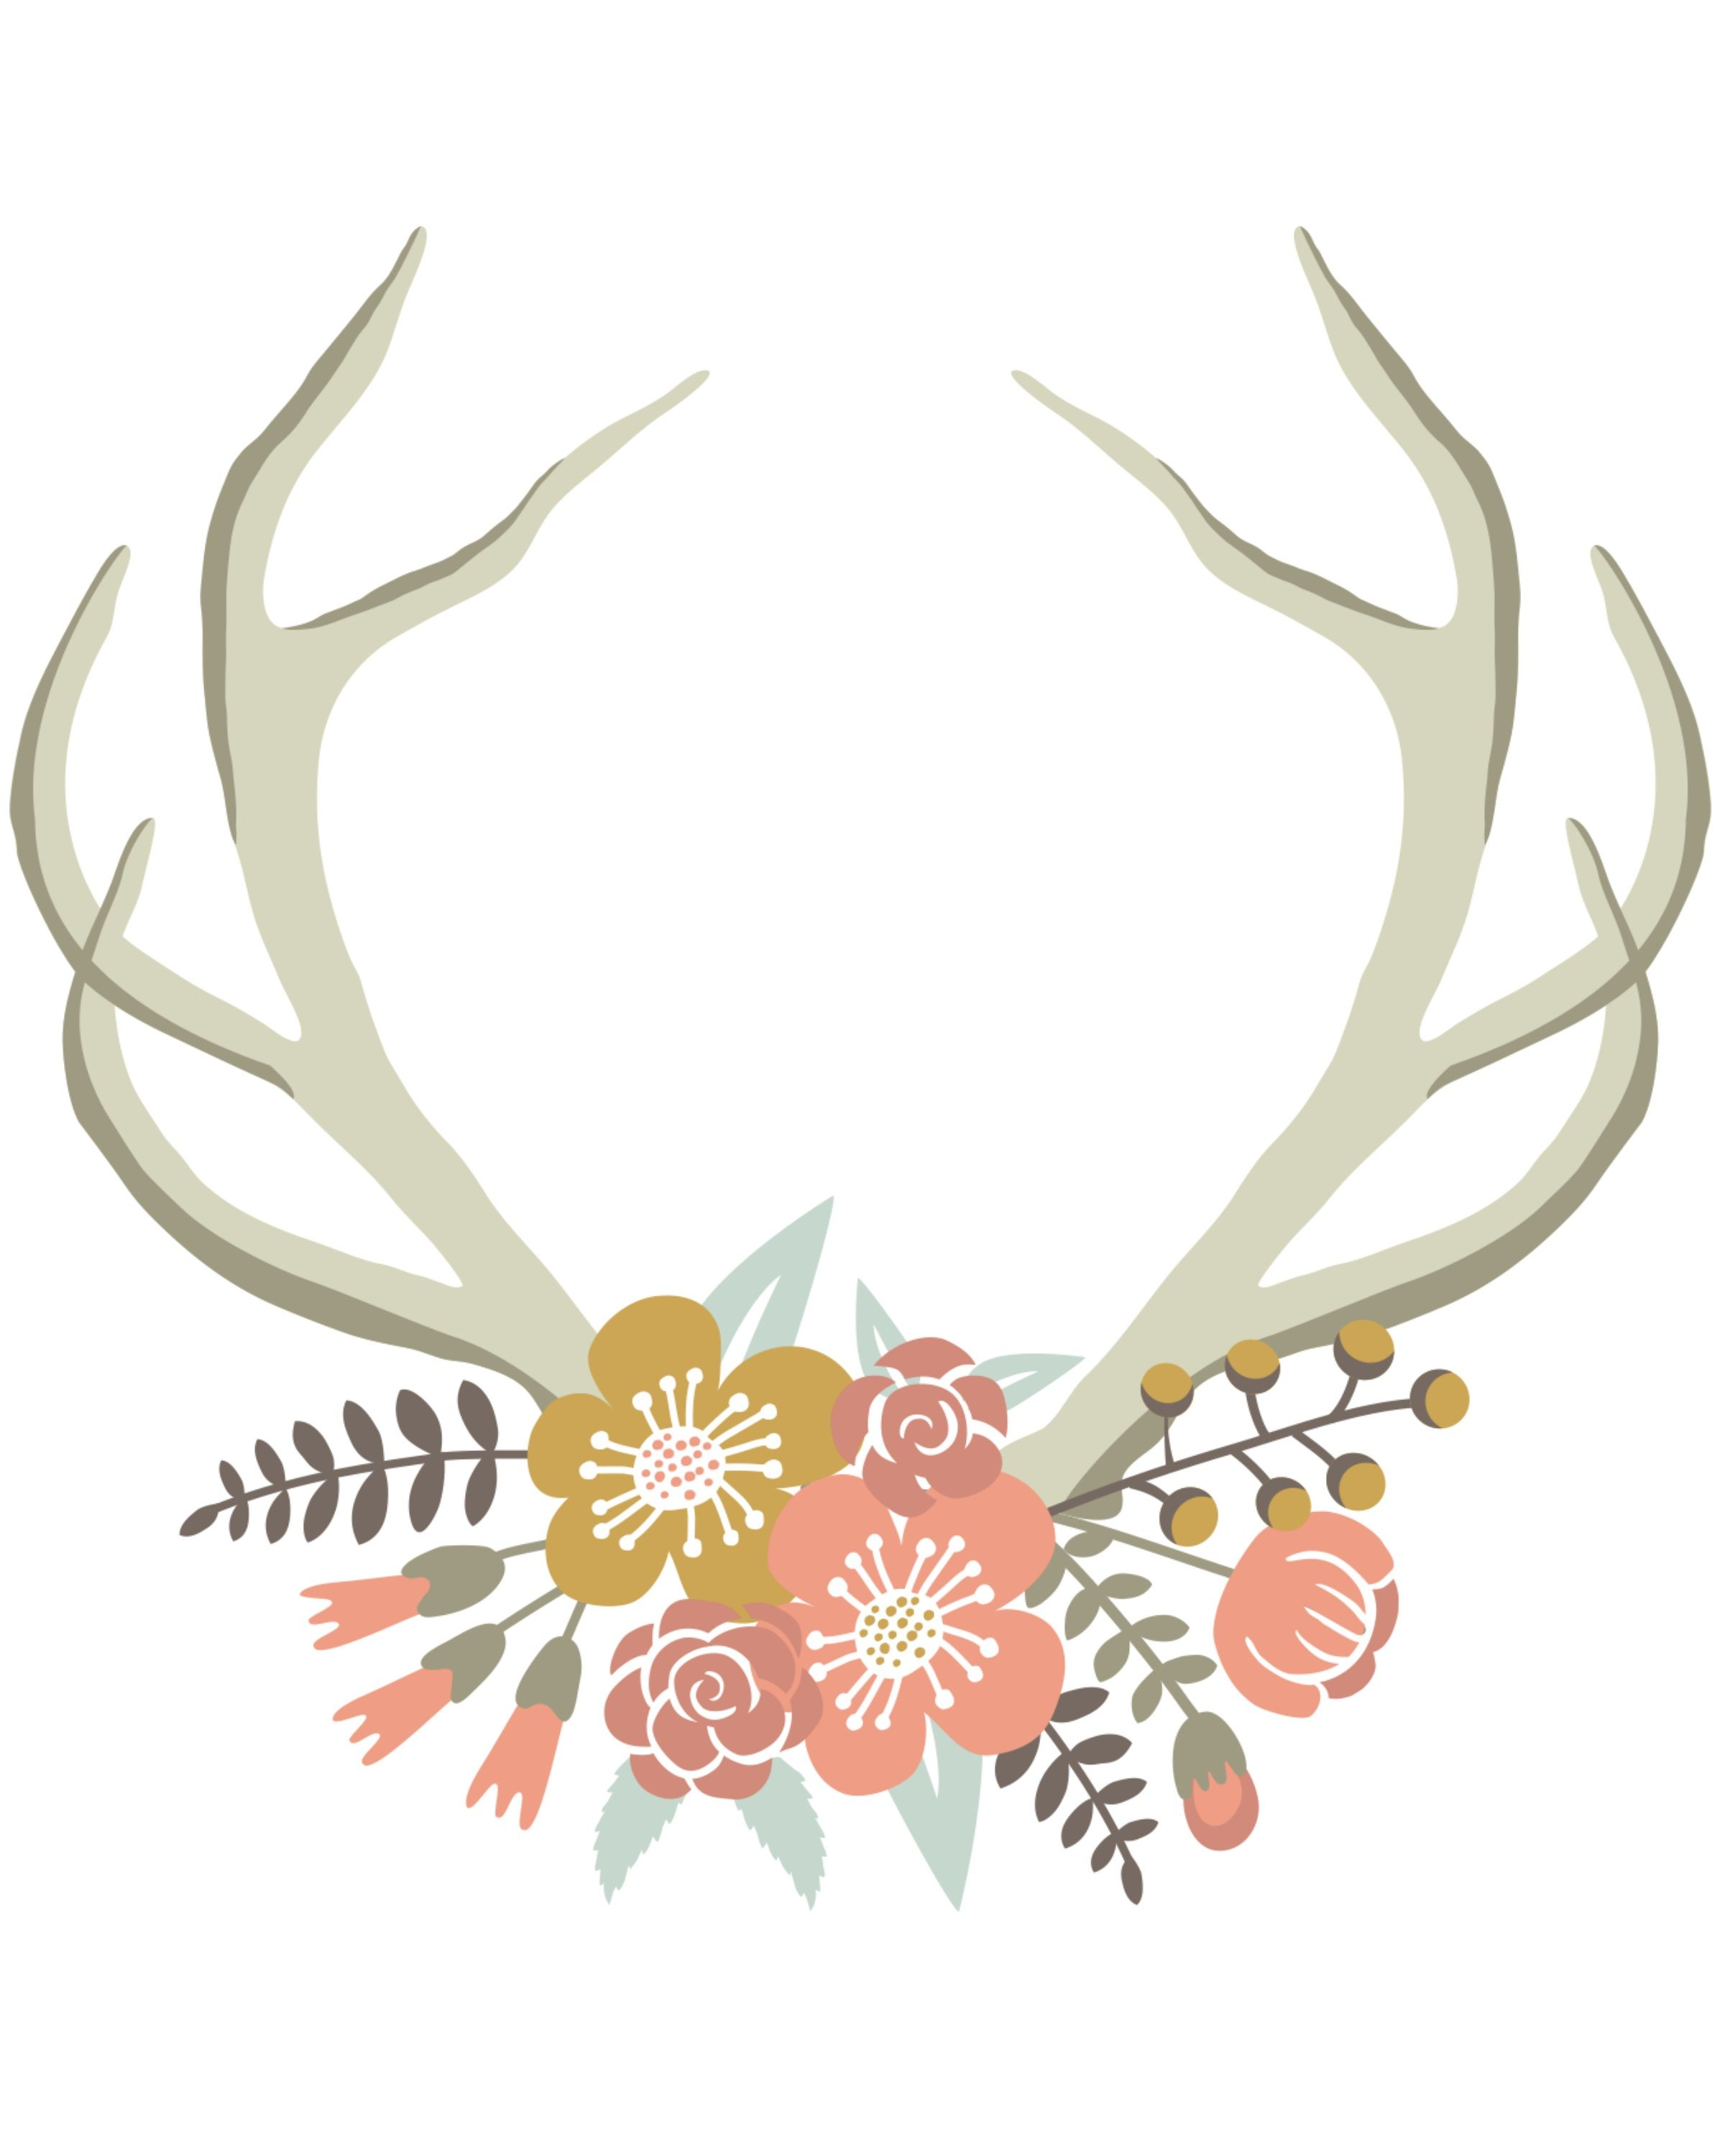 Floral crown free nursery. Antler clipart baby deer